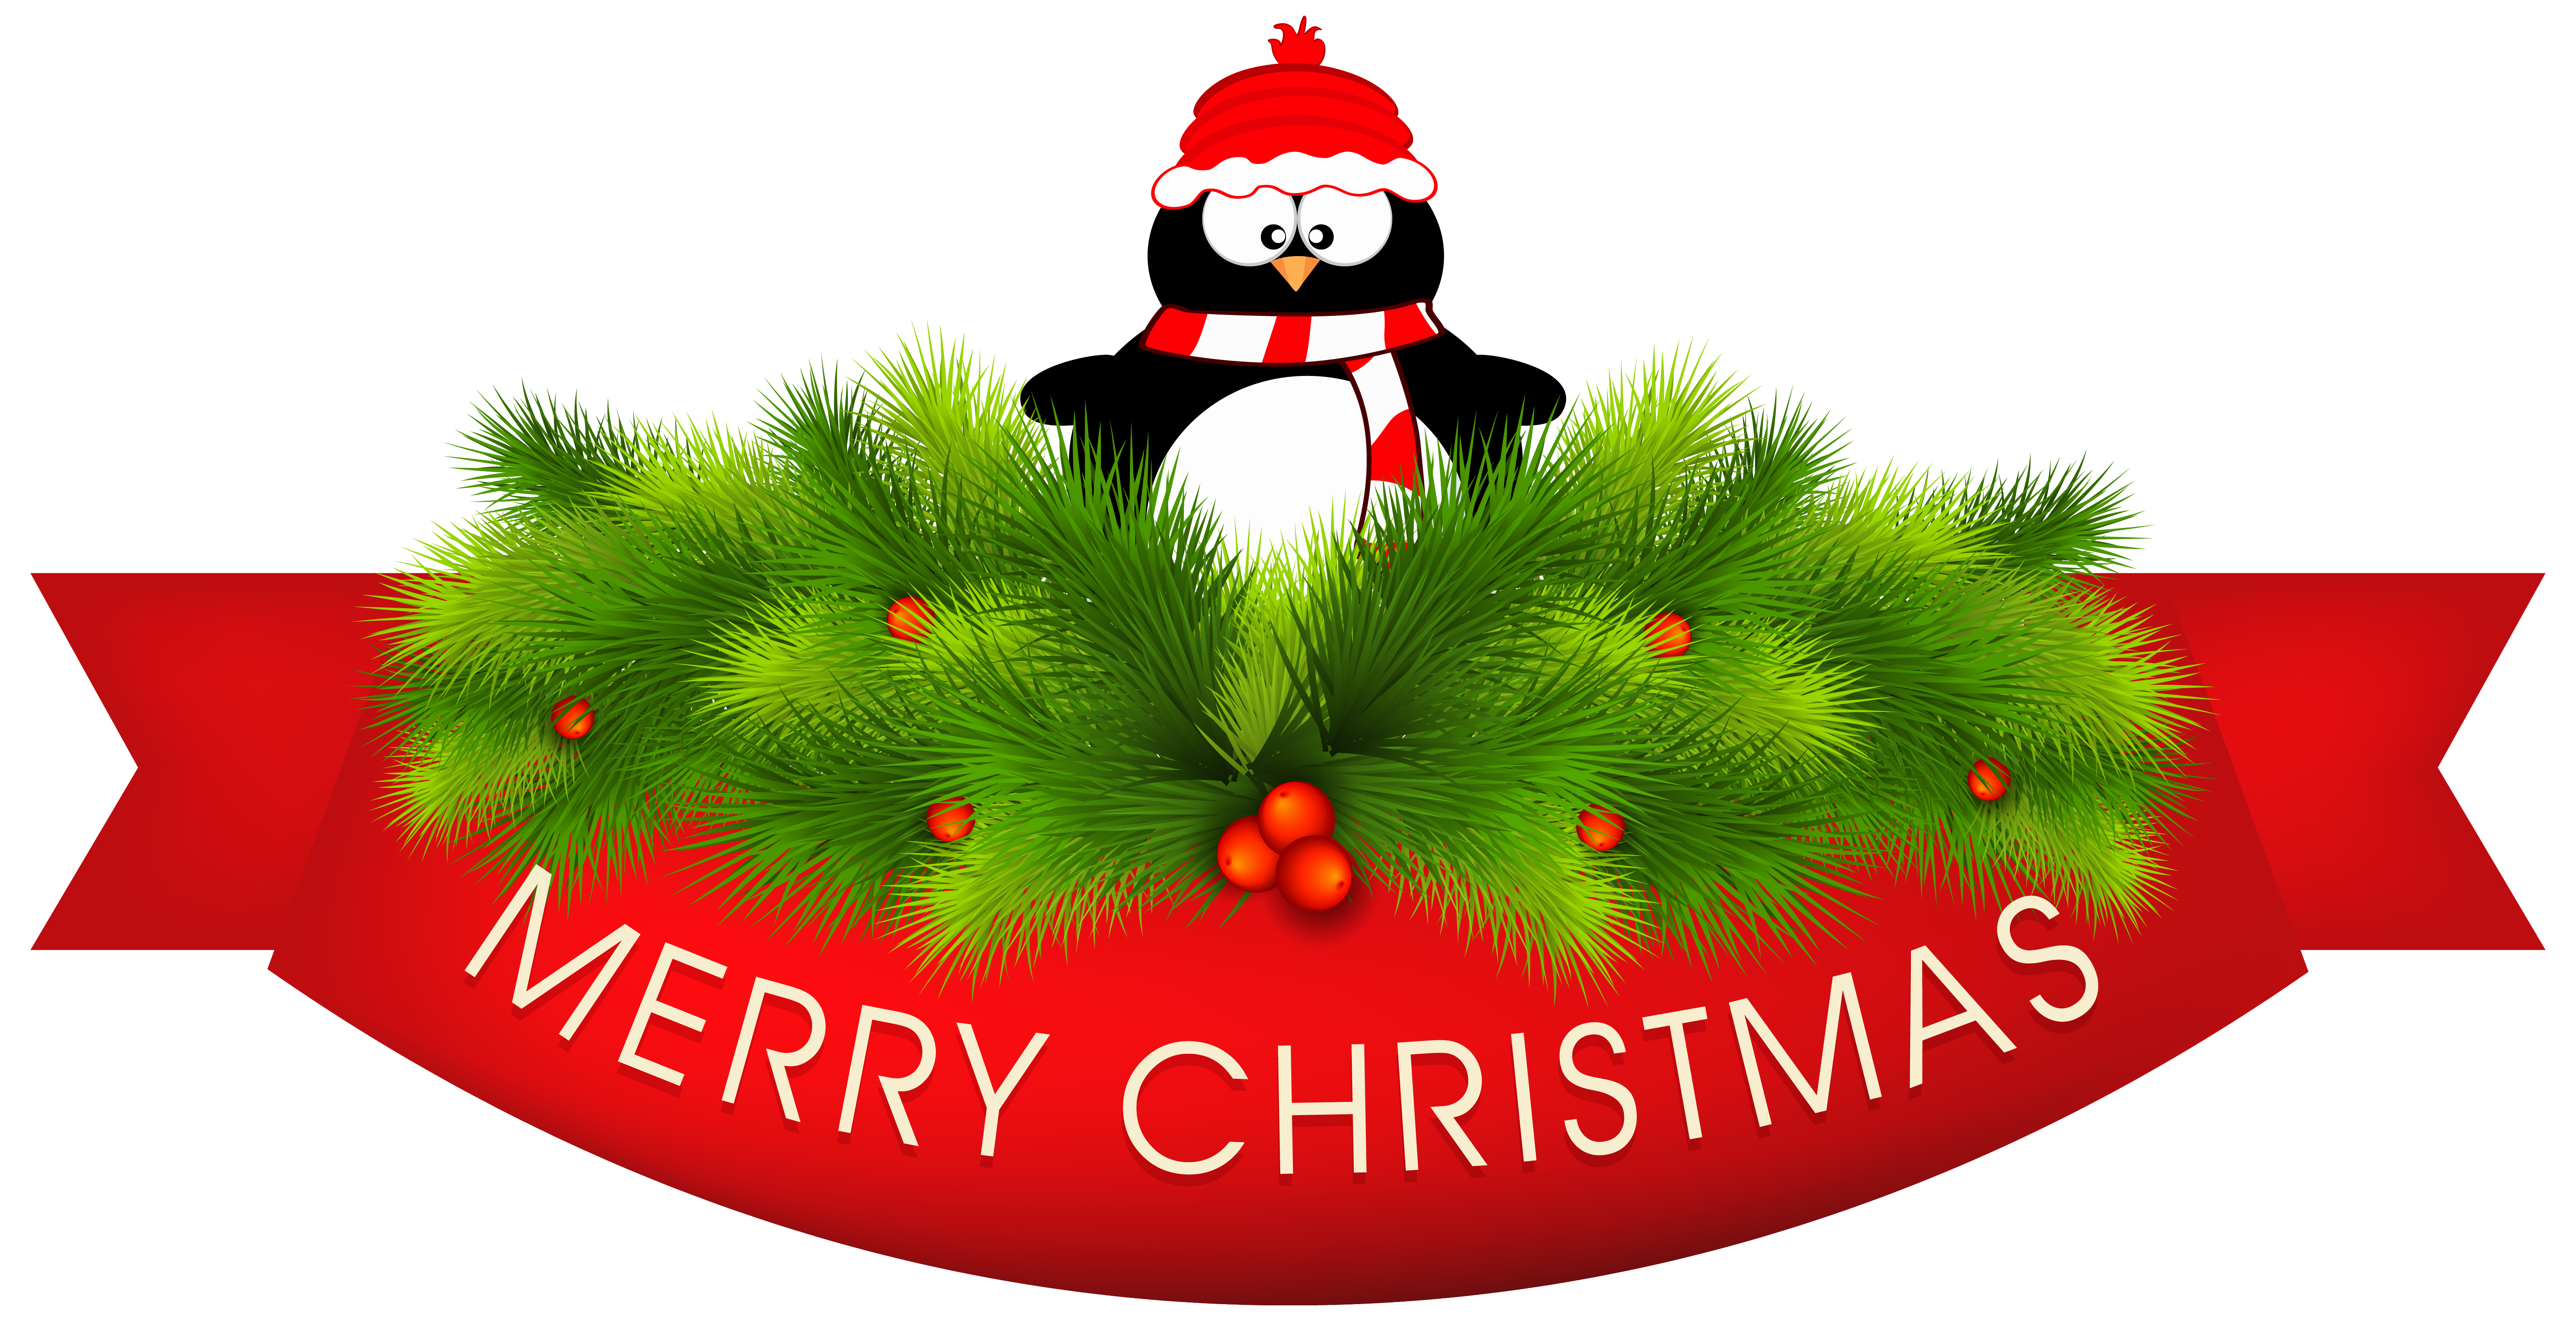 Merry Christmas Decor with Penguin PNG Clipart Image.